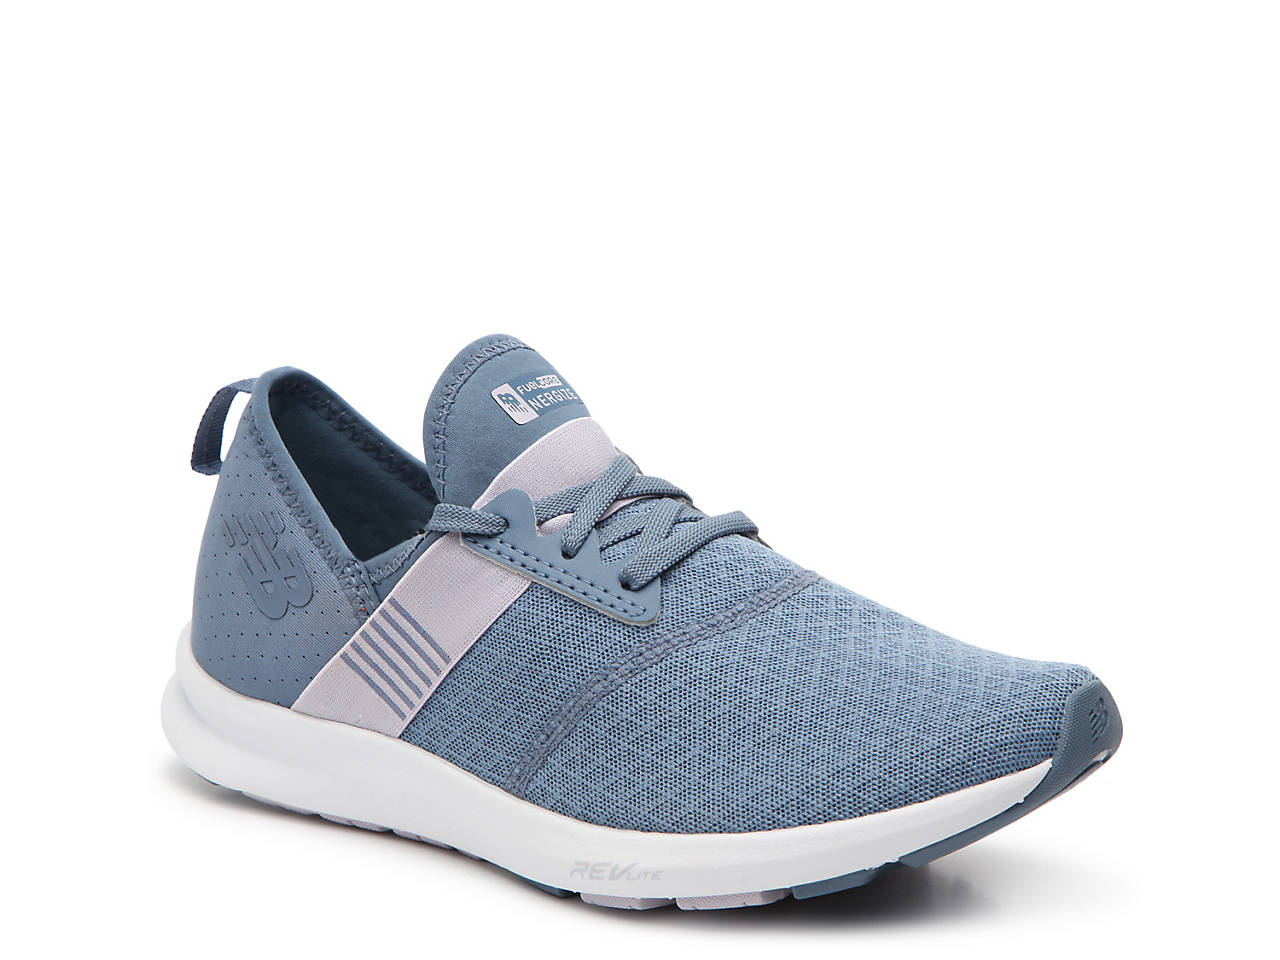 226729518c74 New Balance FuelCore Nergize Lightweight Training Shoe - Women s ...